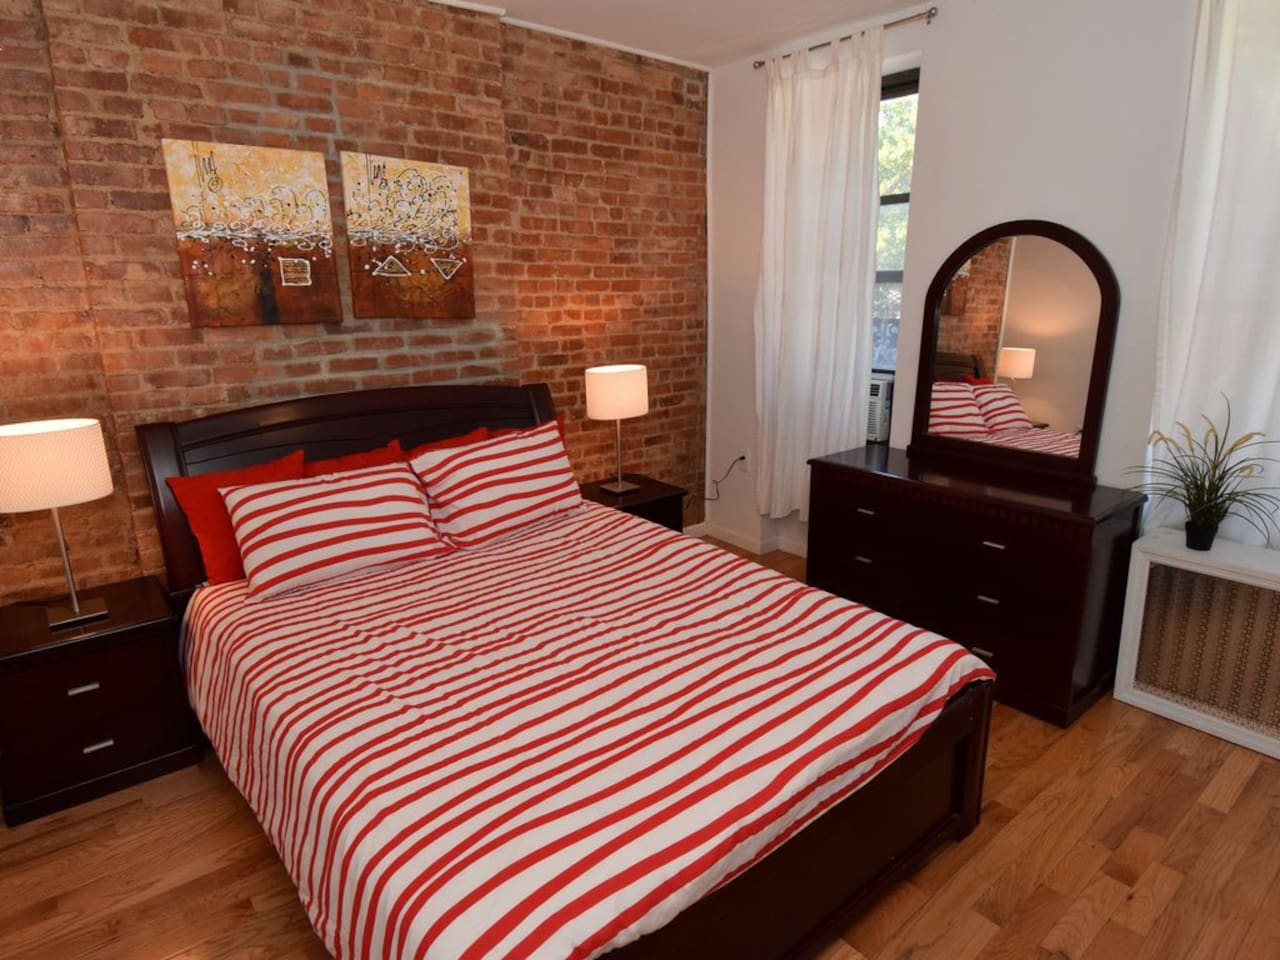 Front bedroom with queen size bed, spacious dresser, and 2 night stands for extra storage.